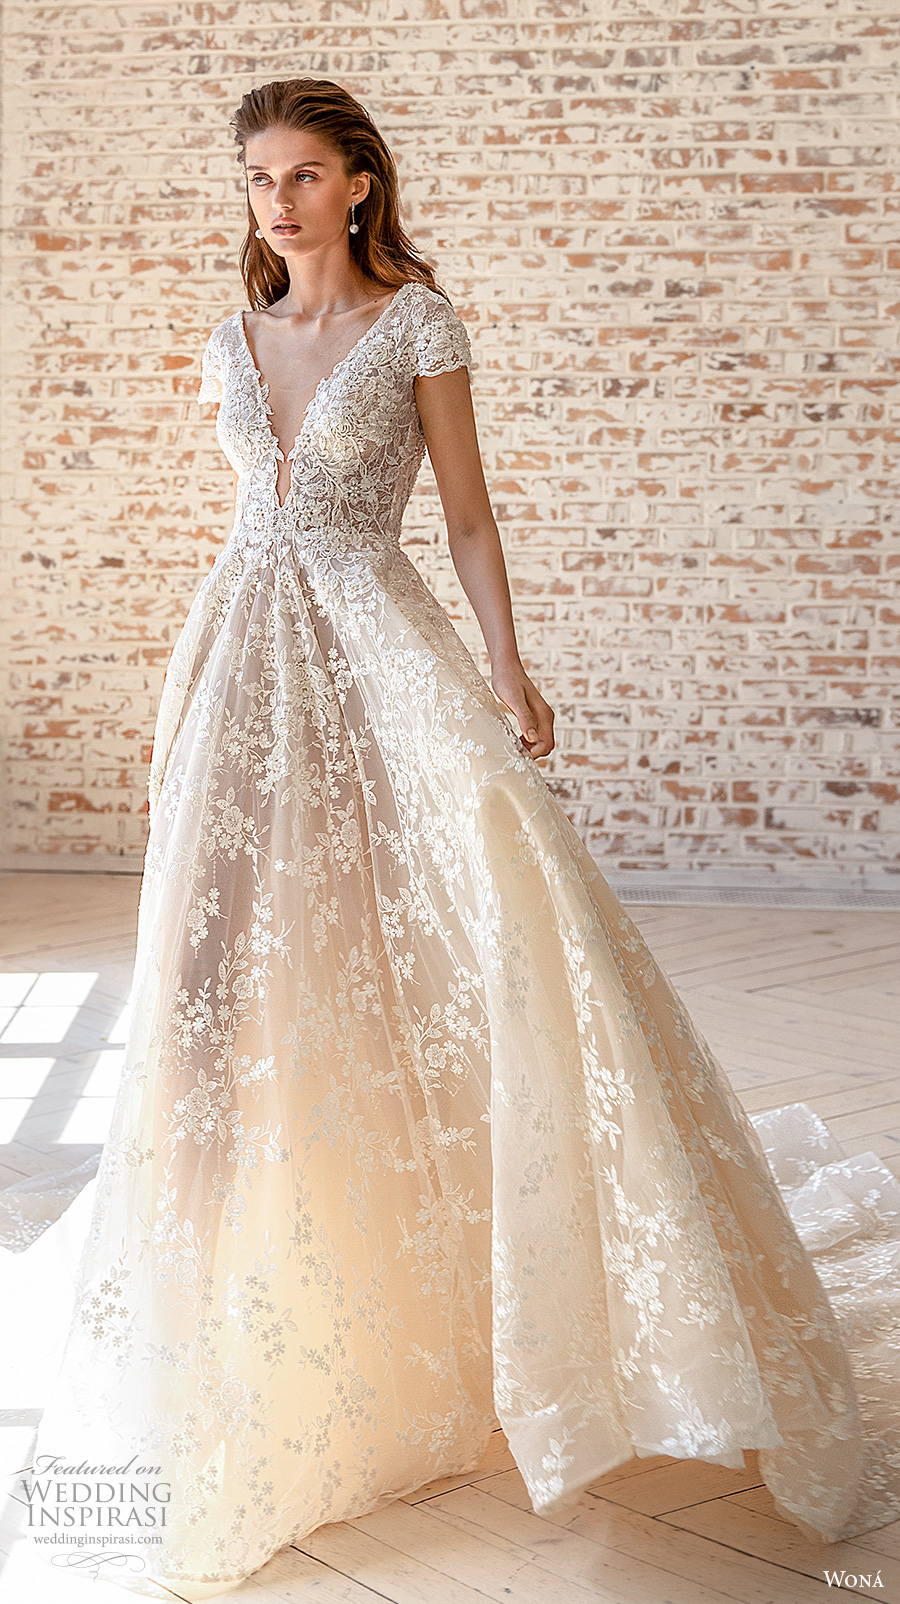 wona concept 2021 romance bridal short sleeves deep v neck full embellishment romantic soft a  line wedding dress v back chapel train (2) mv